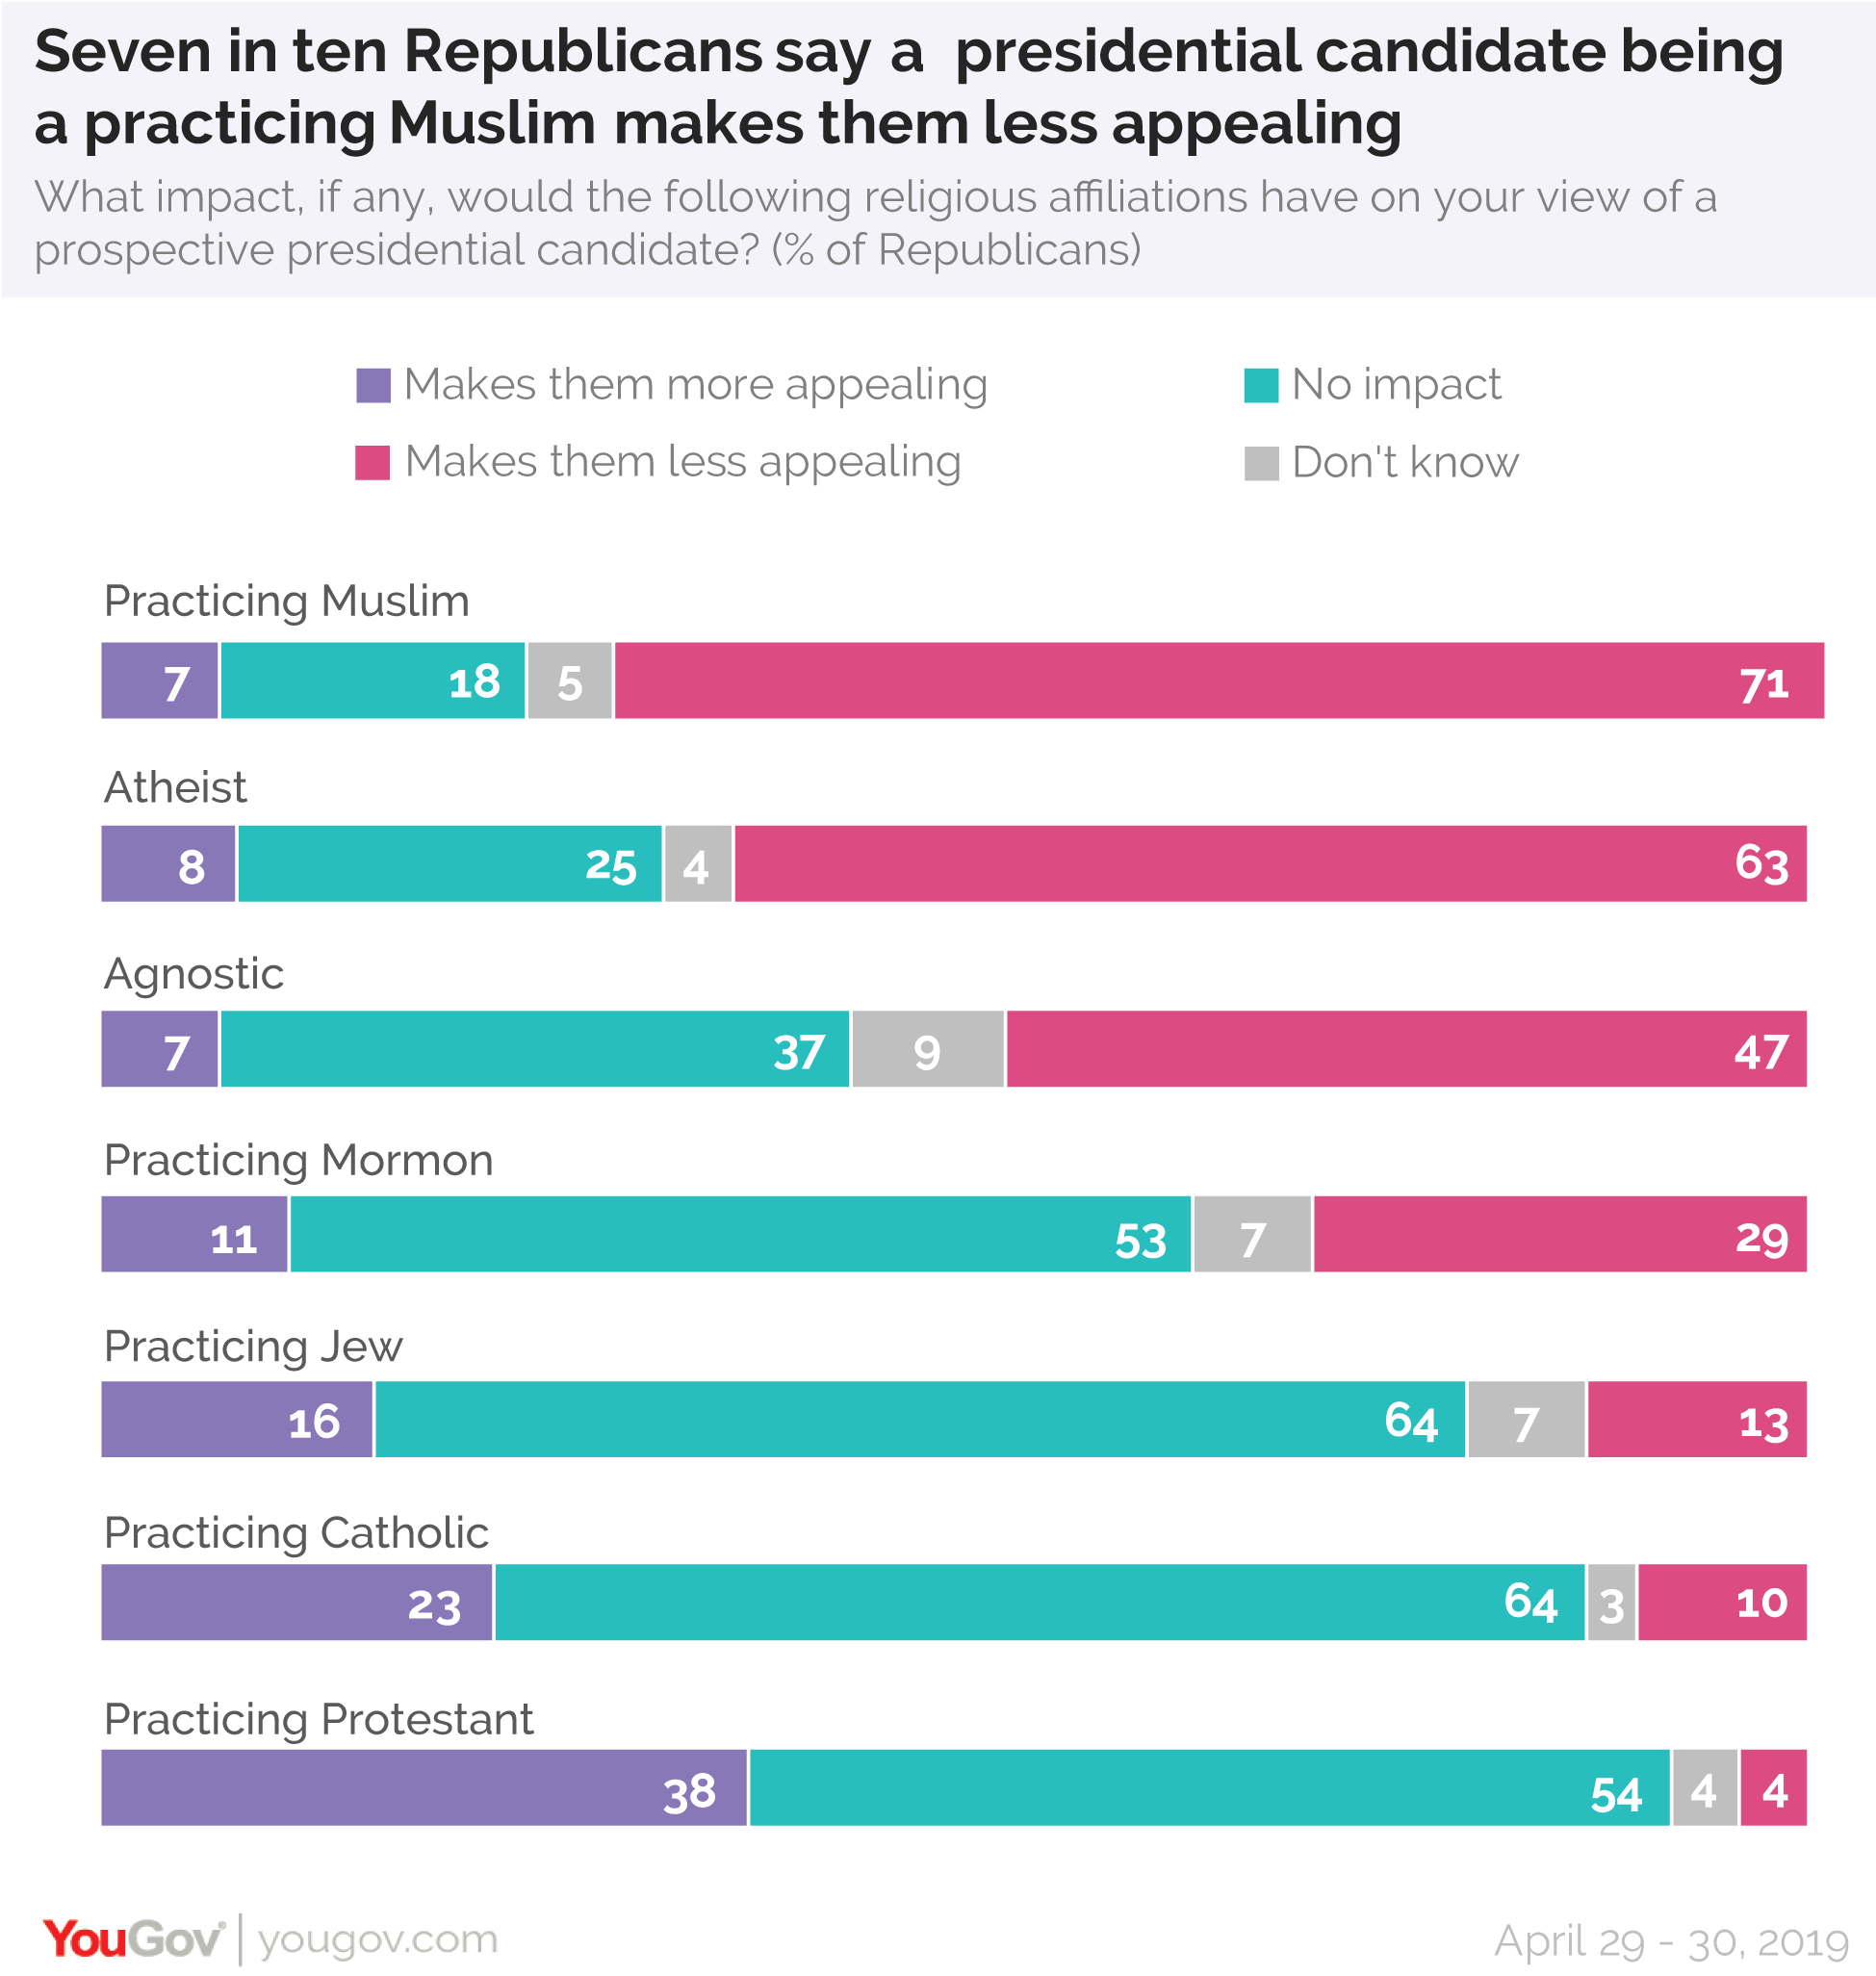 Seven in ten Republicans say a presidential candidate being a practicing Muslim makes them less appealing